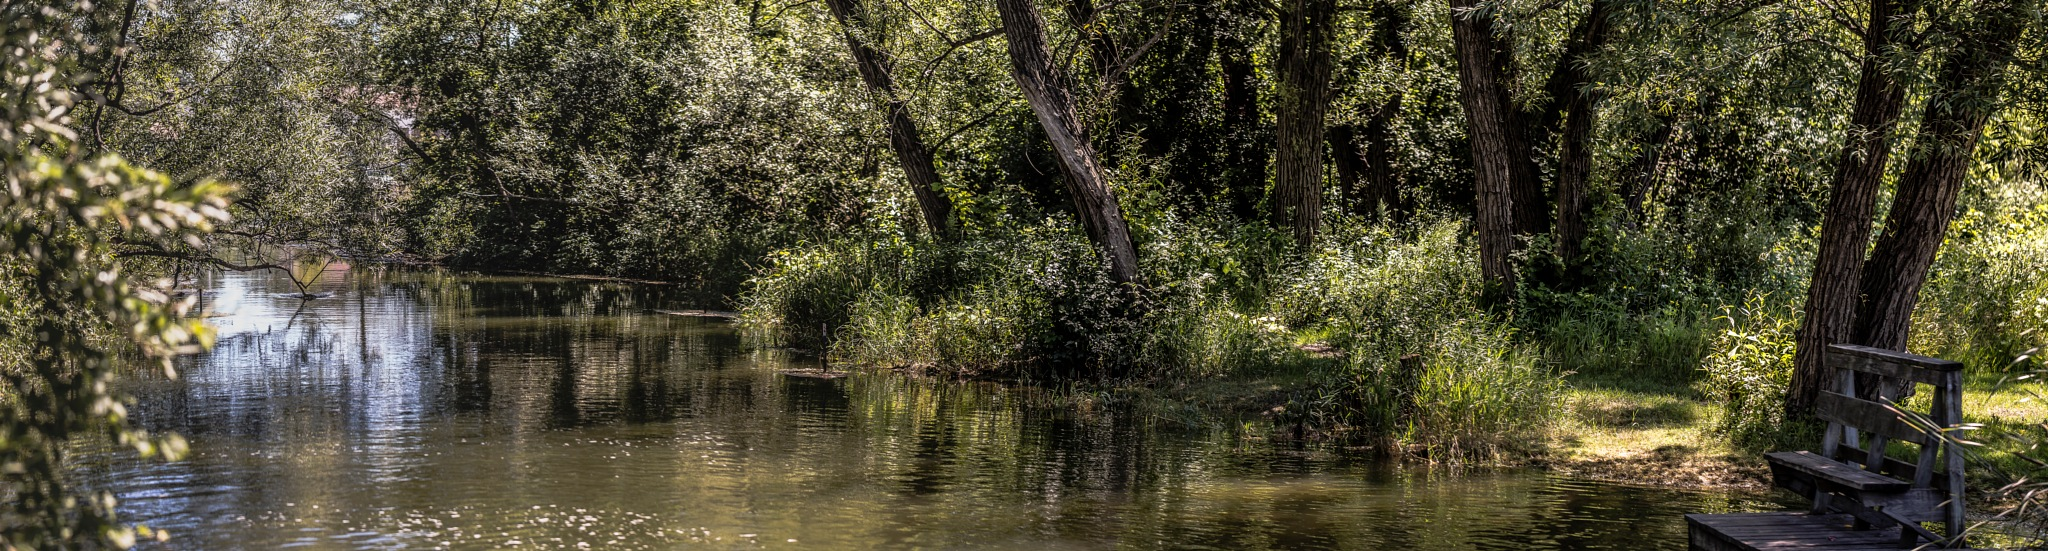 Wisconsin Backwaters by MaryBethMenden